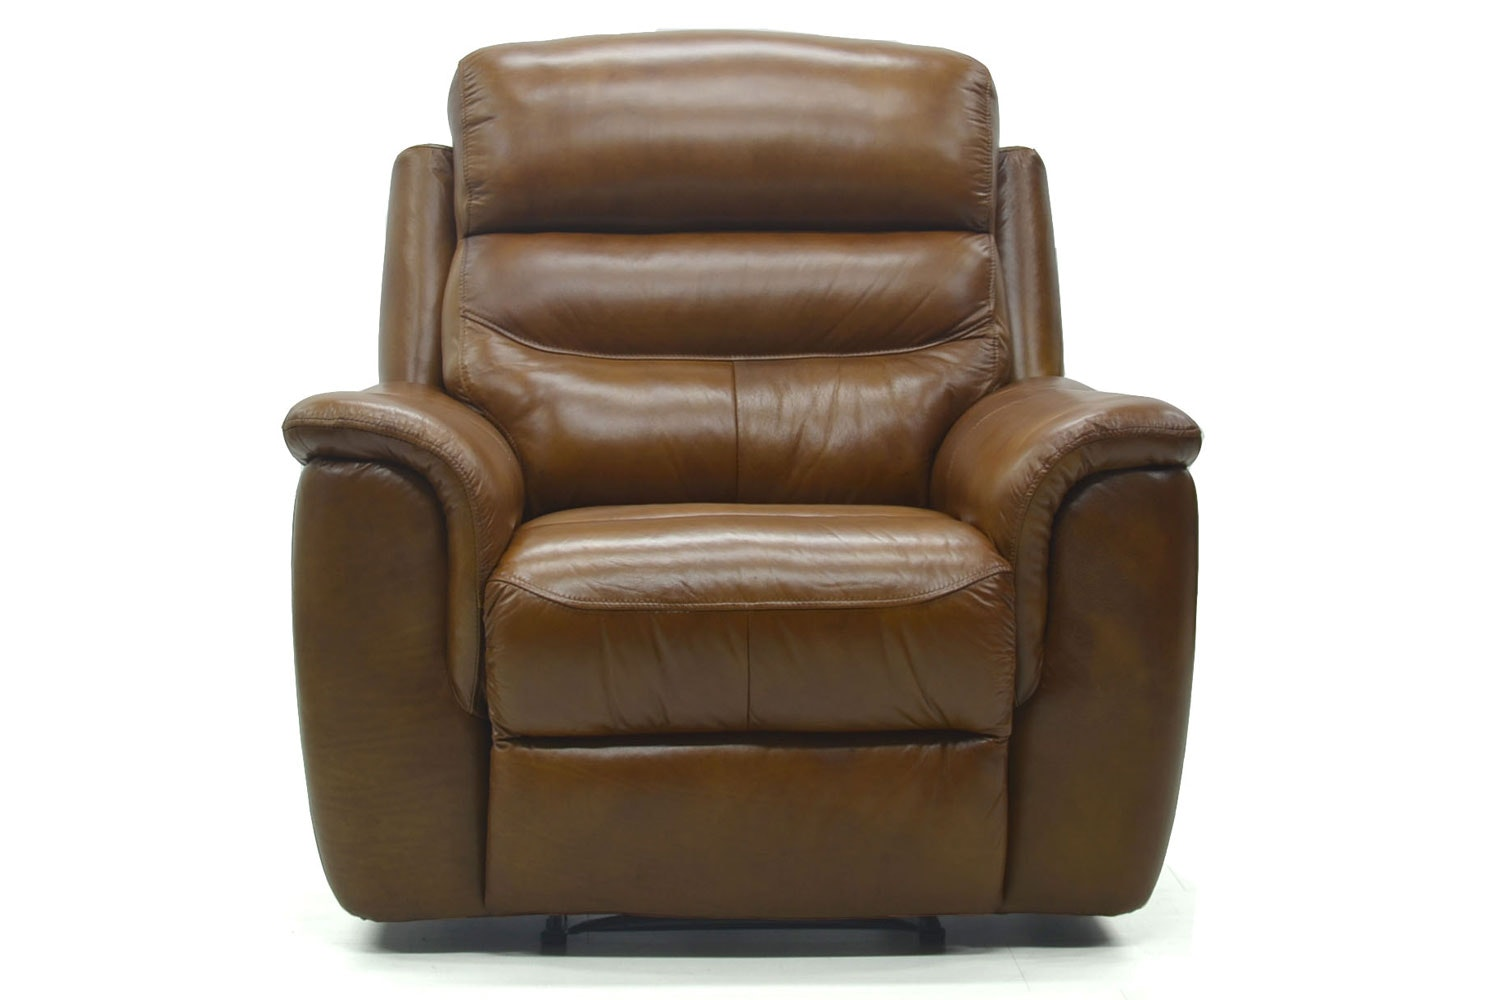 Bayle Leather Recliner Armchair | Parquet